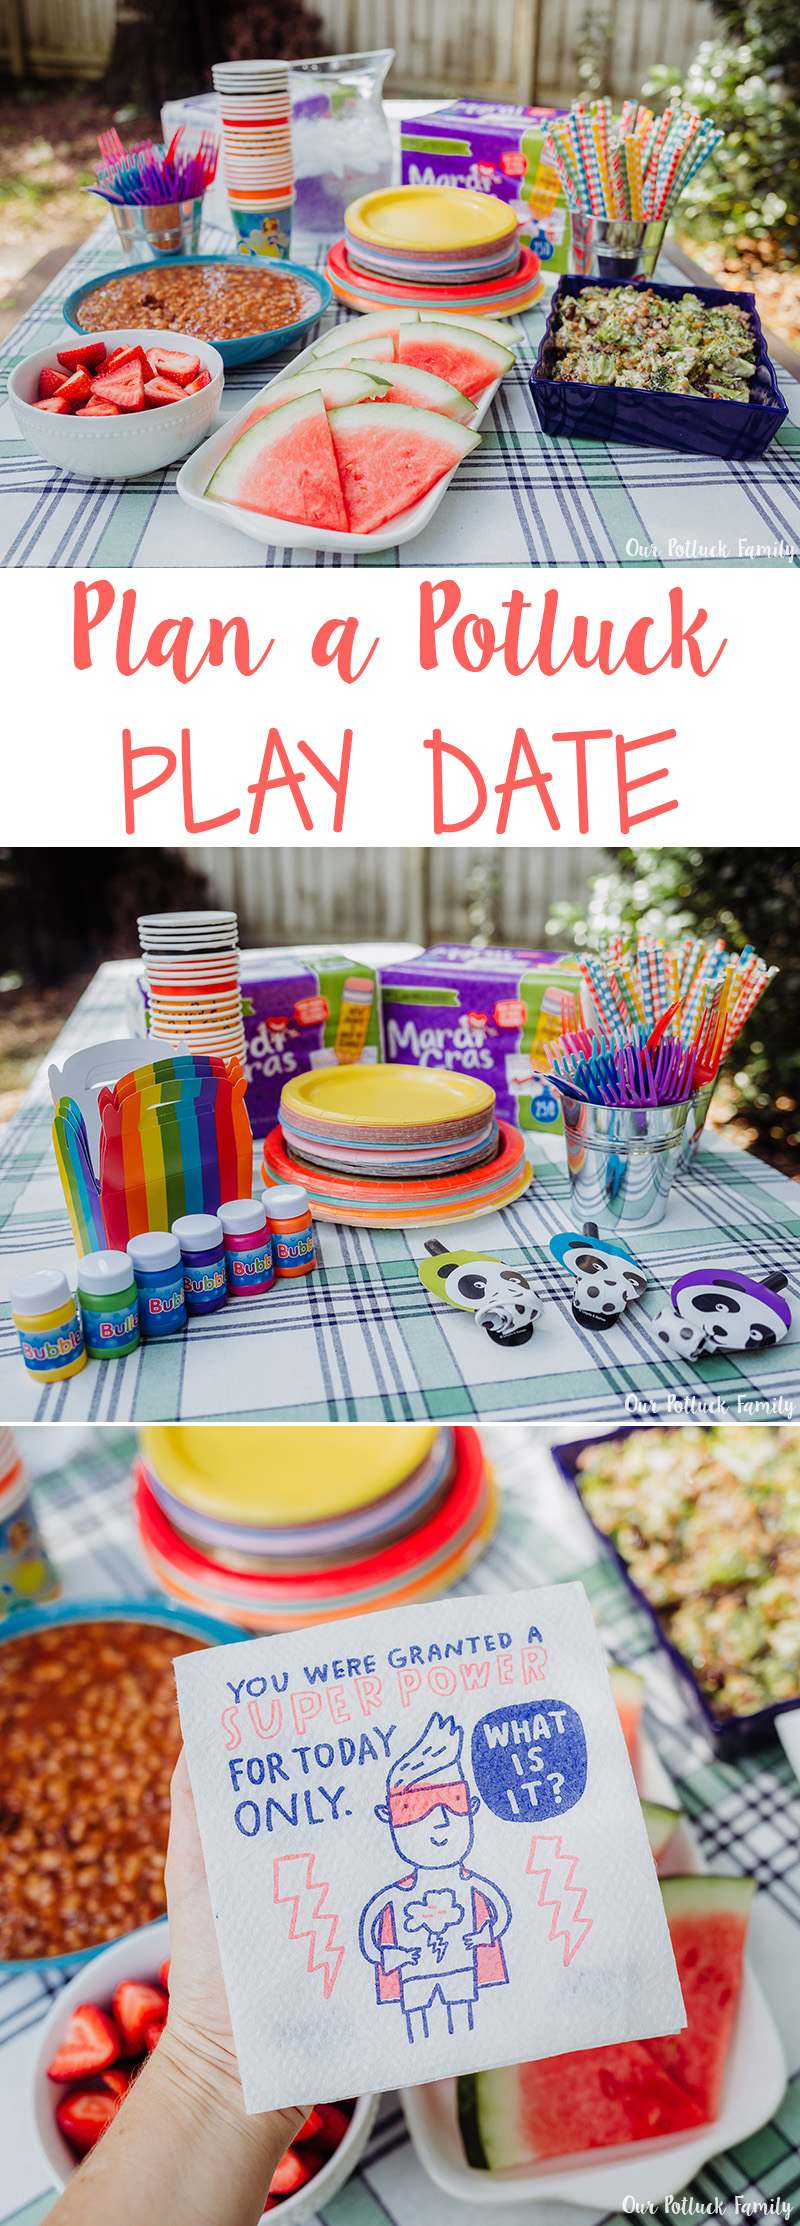 Potluck Play Date Ideas